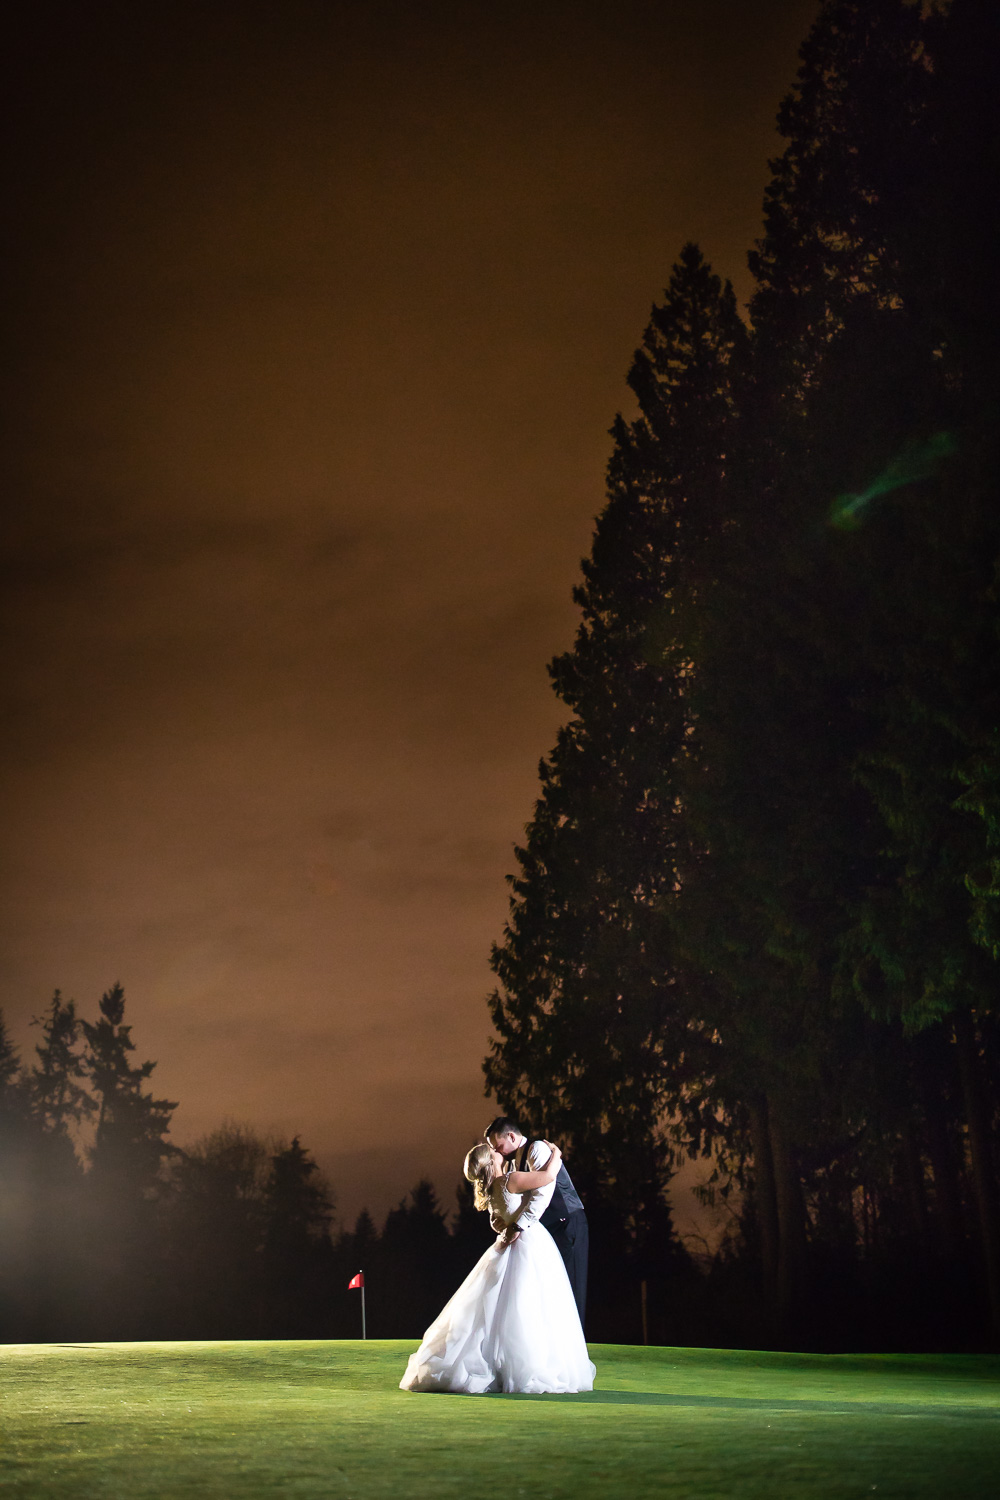 mill-creek-country-club-wedding-harth-photography-0866.jpg